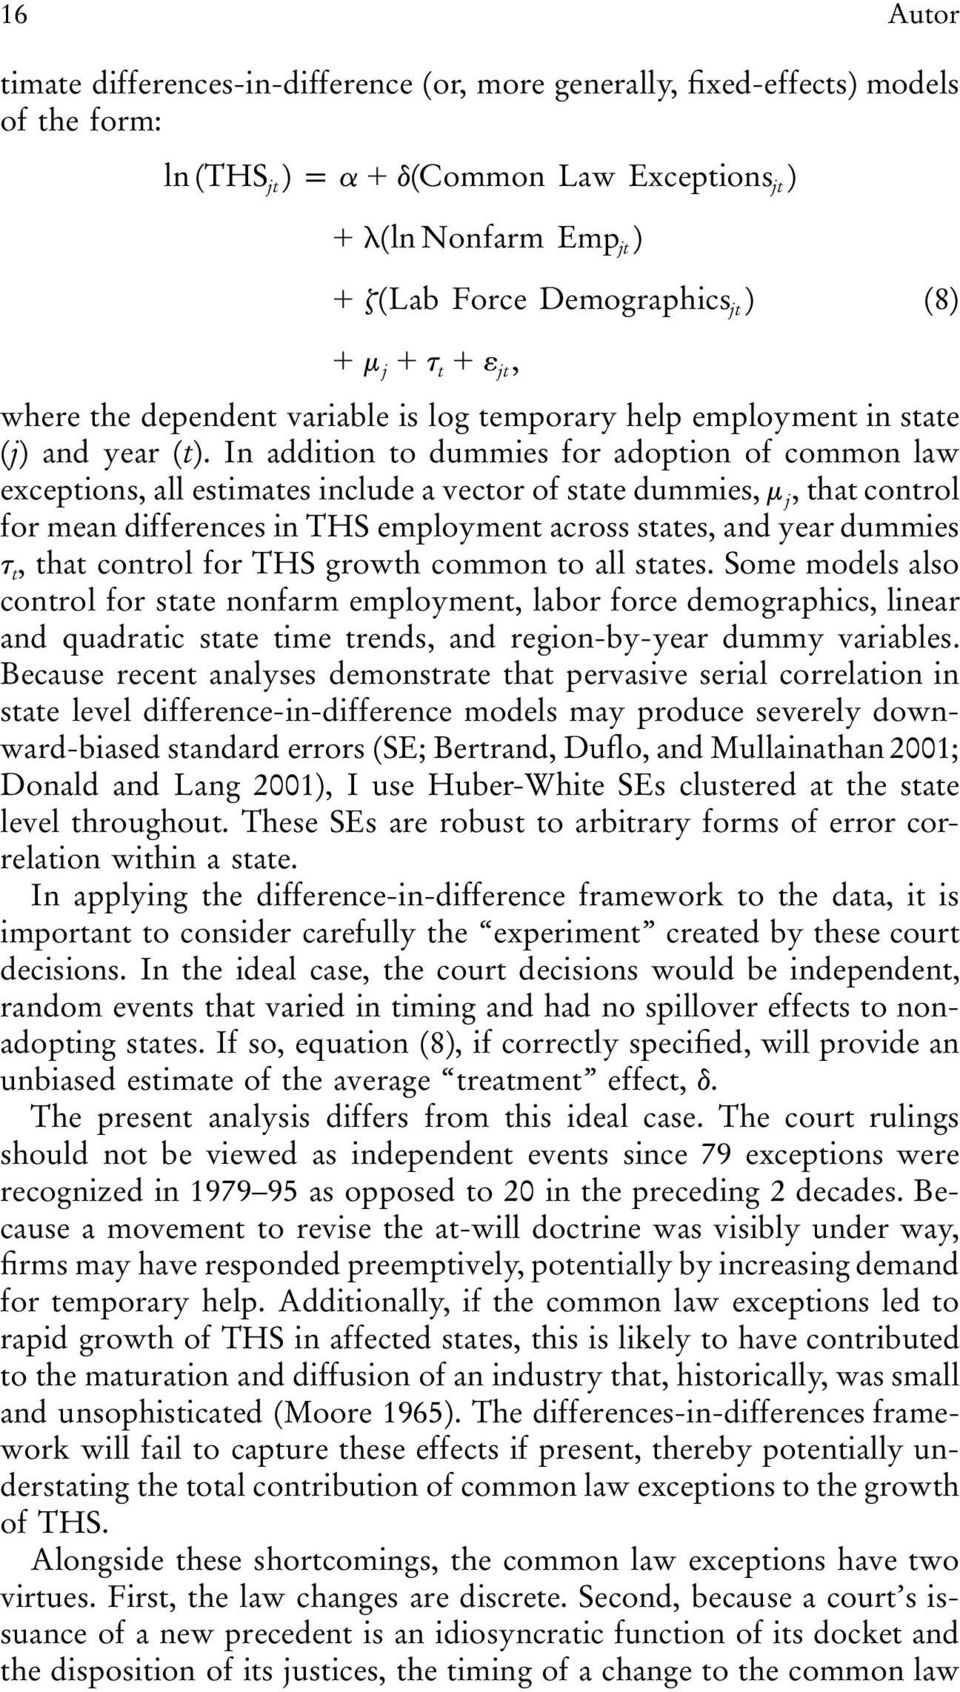 In addition to dummies for adoption of common law exceptions, all estimates include a vector of state dummies, m j, that control for mean differences in THS employment across states, and year dummies